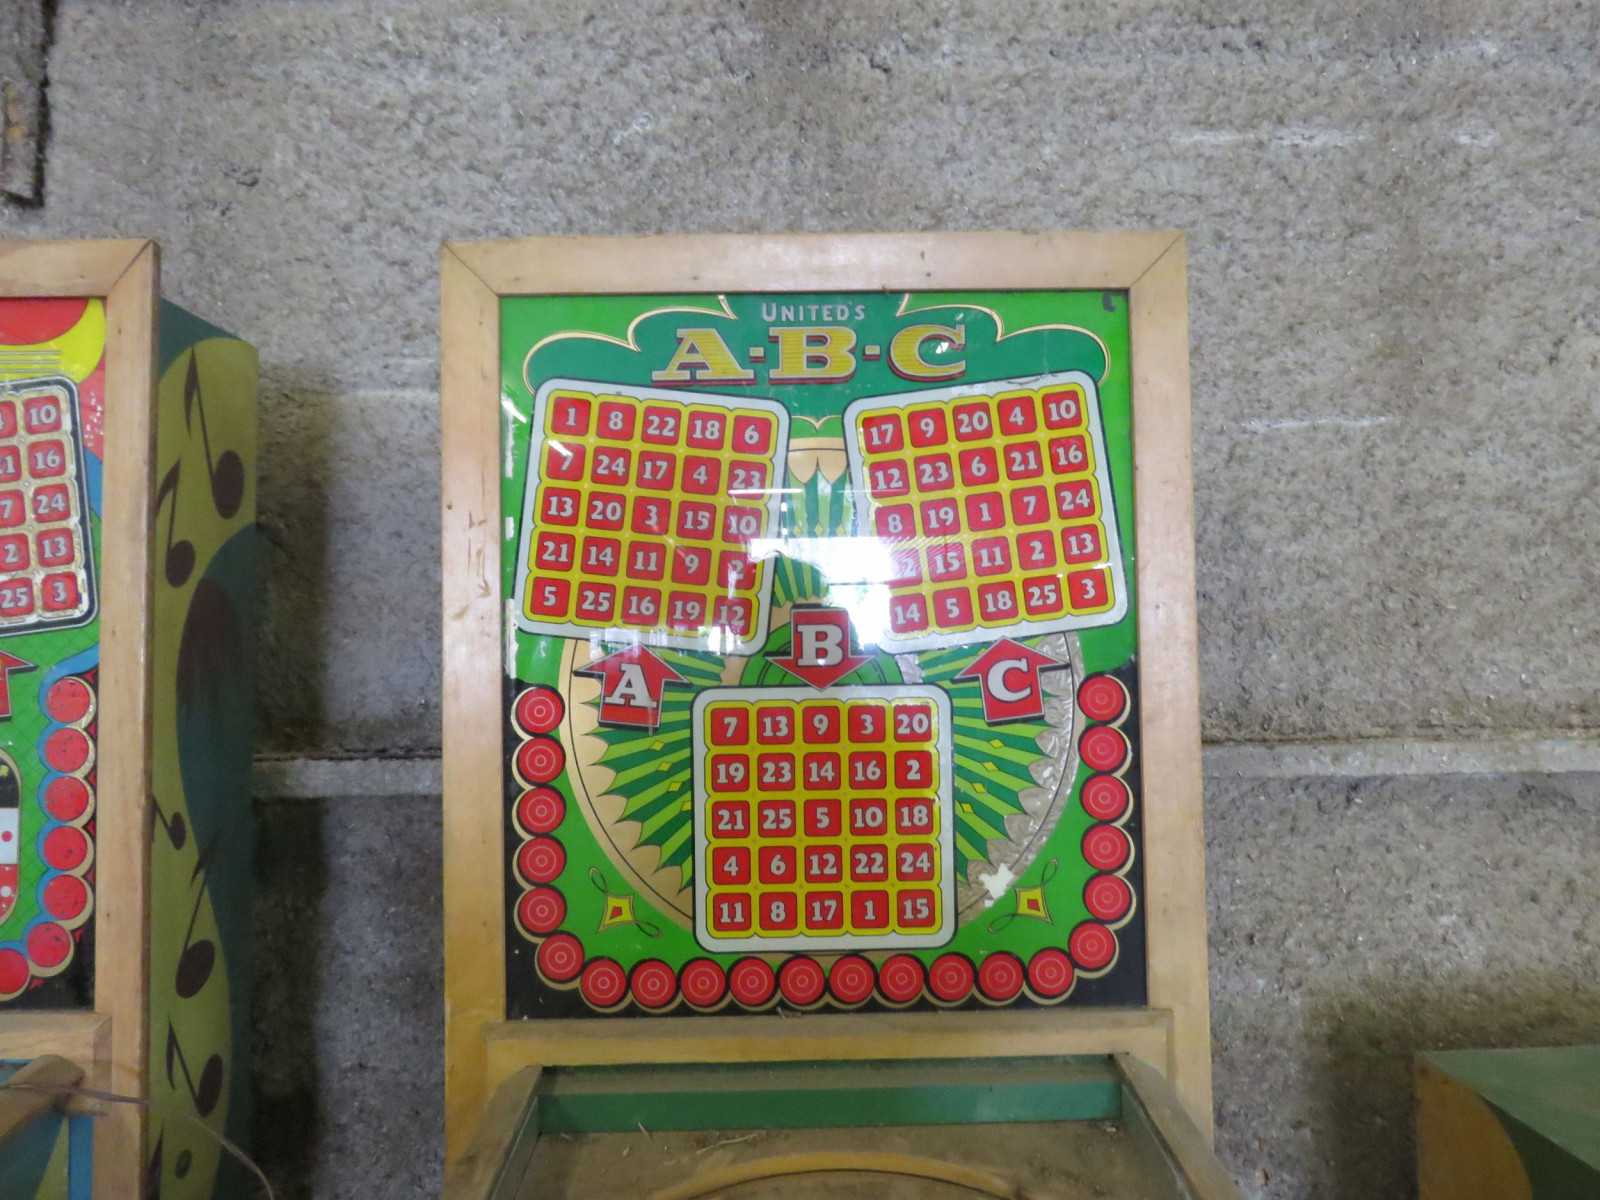 Vintage United ABC Pinball Machine - Image 3